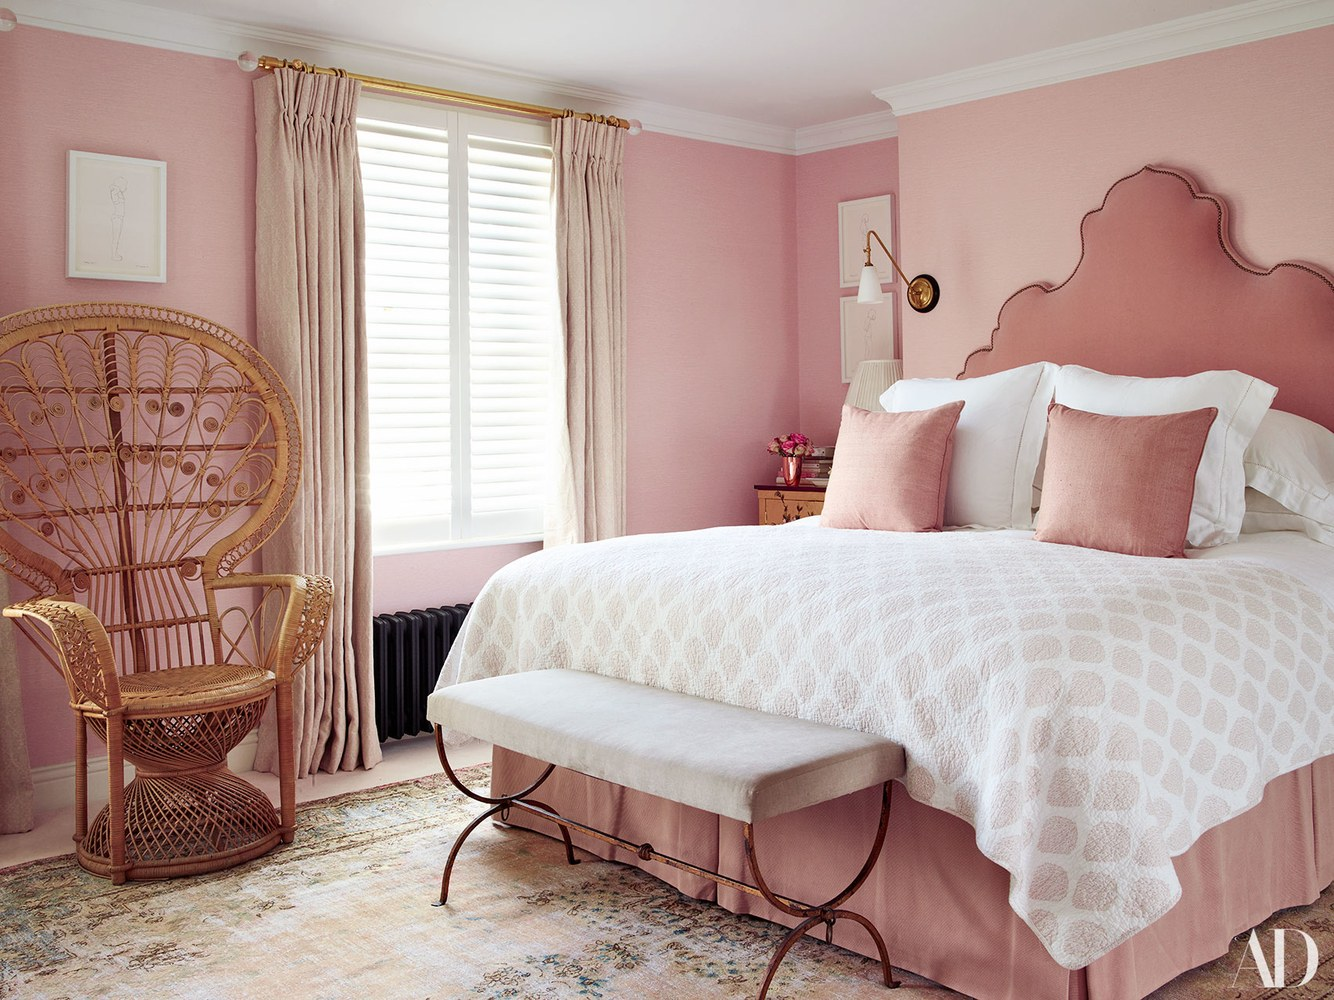 Poppy Delevingne poppy delevingne Poppy Delevingne Opens Her Chic, light-filled London Home Poppy Delevingne Opens Her Chic light filled London Home 4